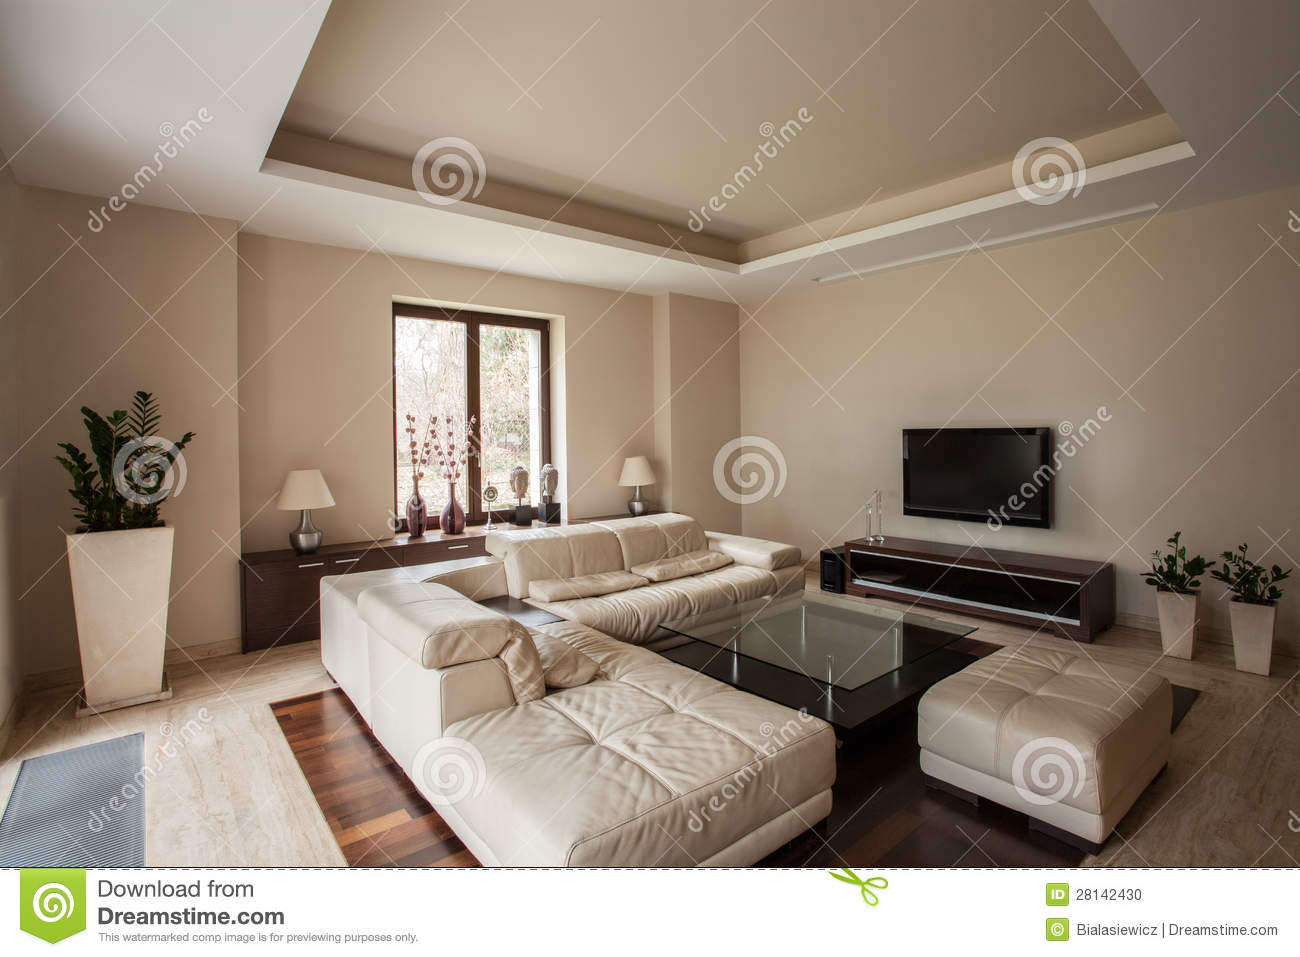 Maison de travertin salon moderne photo stock image - Salon de maison moderne ...